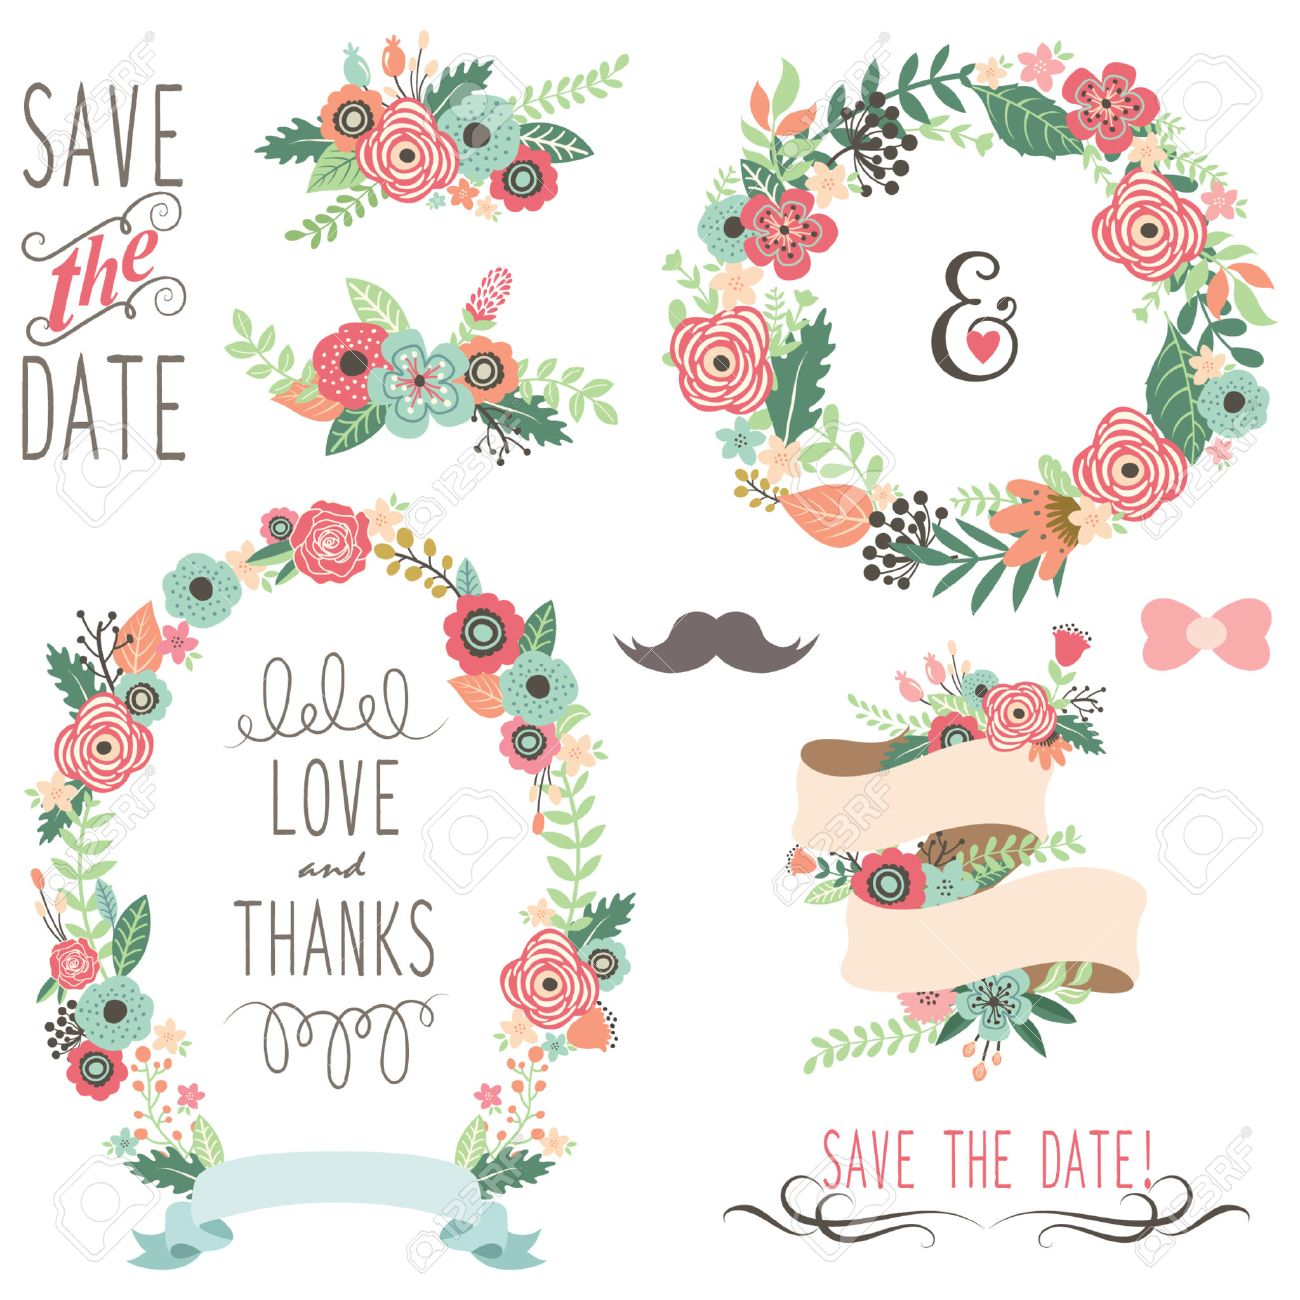 Wedding Vintage Flowers Wreath Stock Vector - 42212073